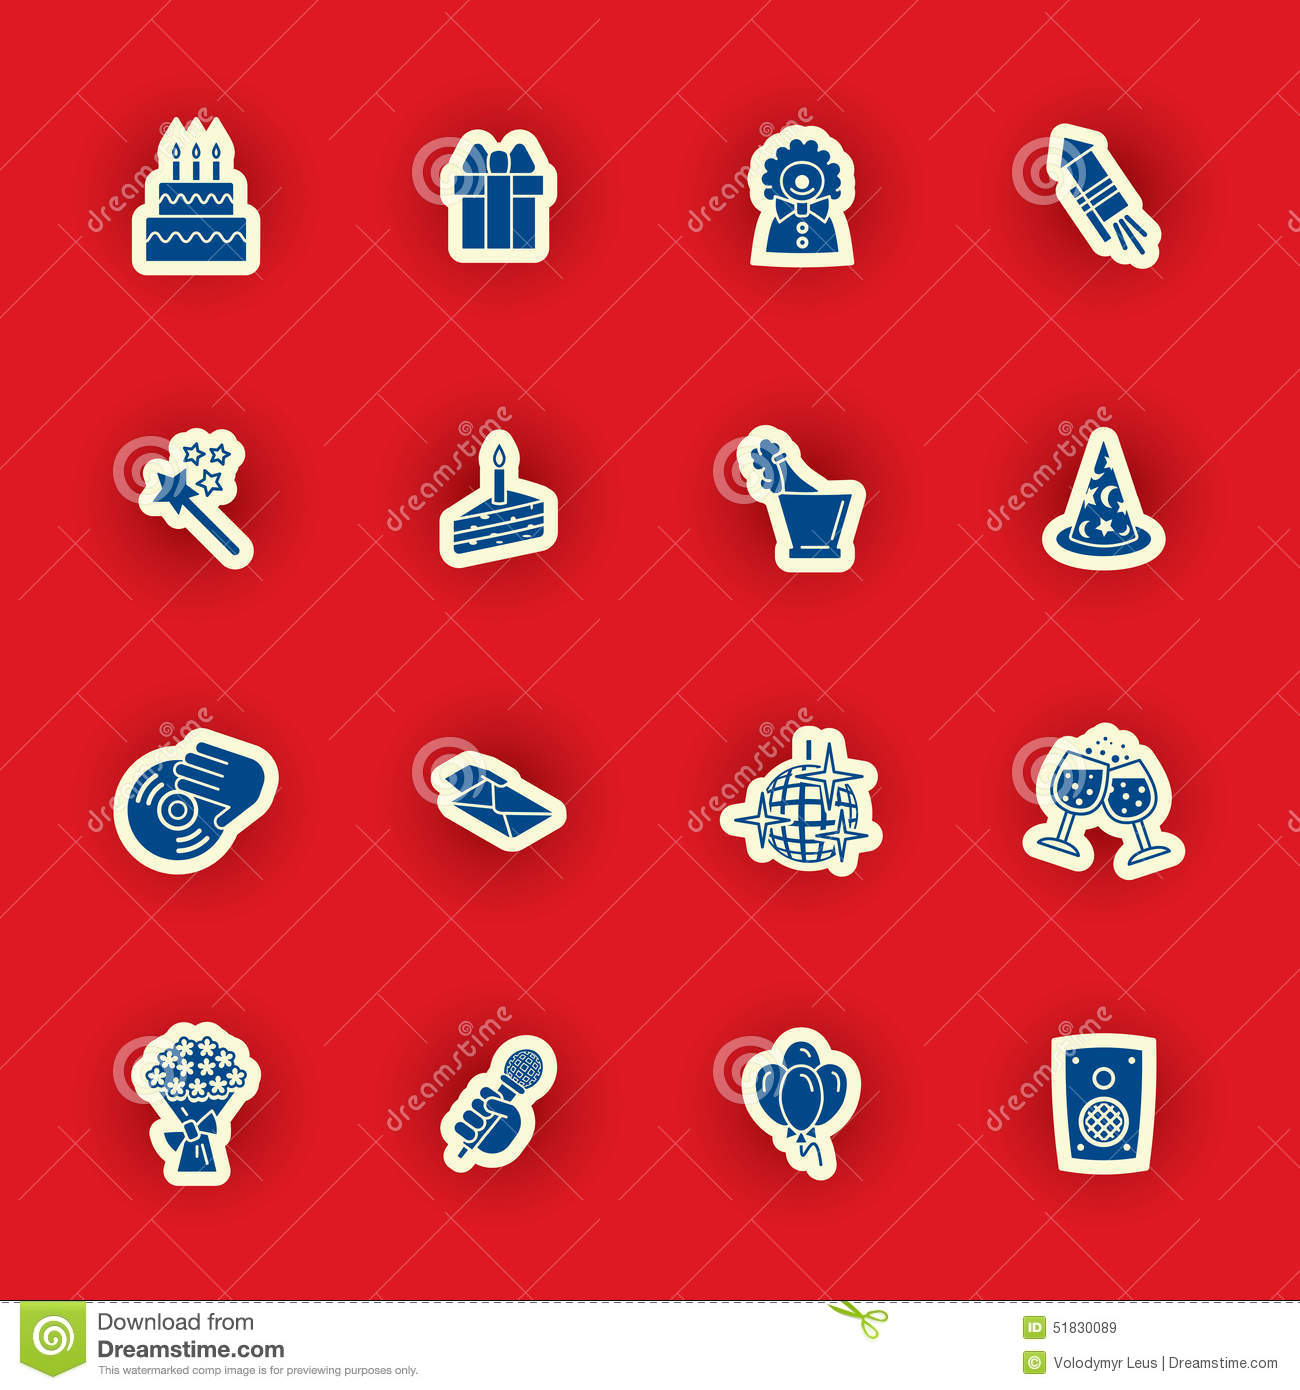 Birthday icon set isolated on red